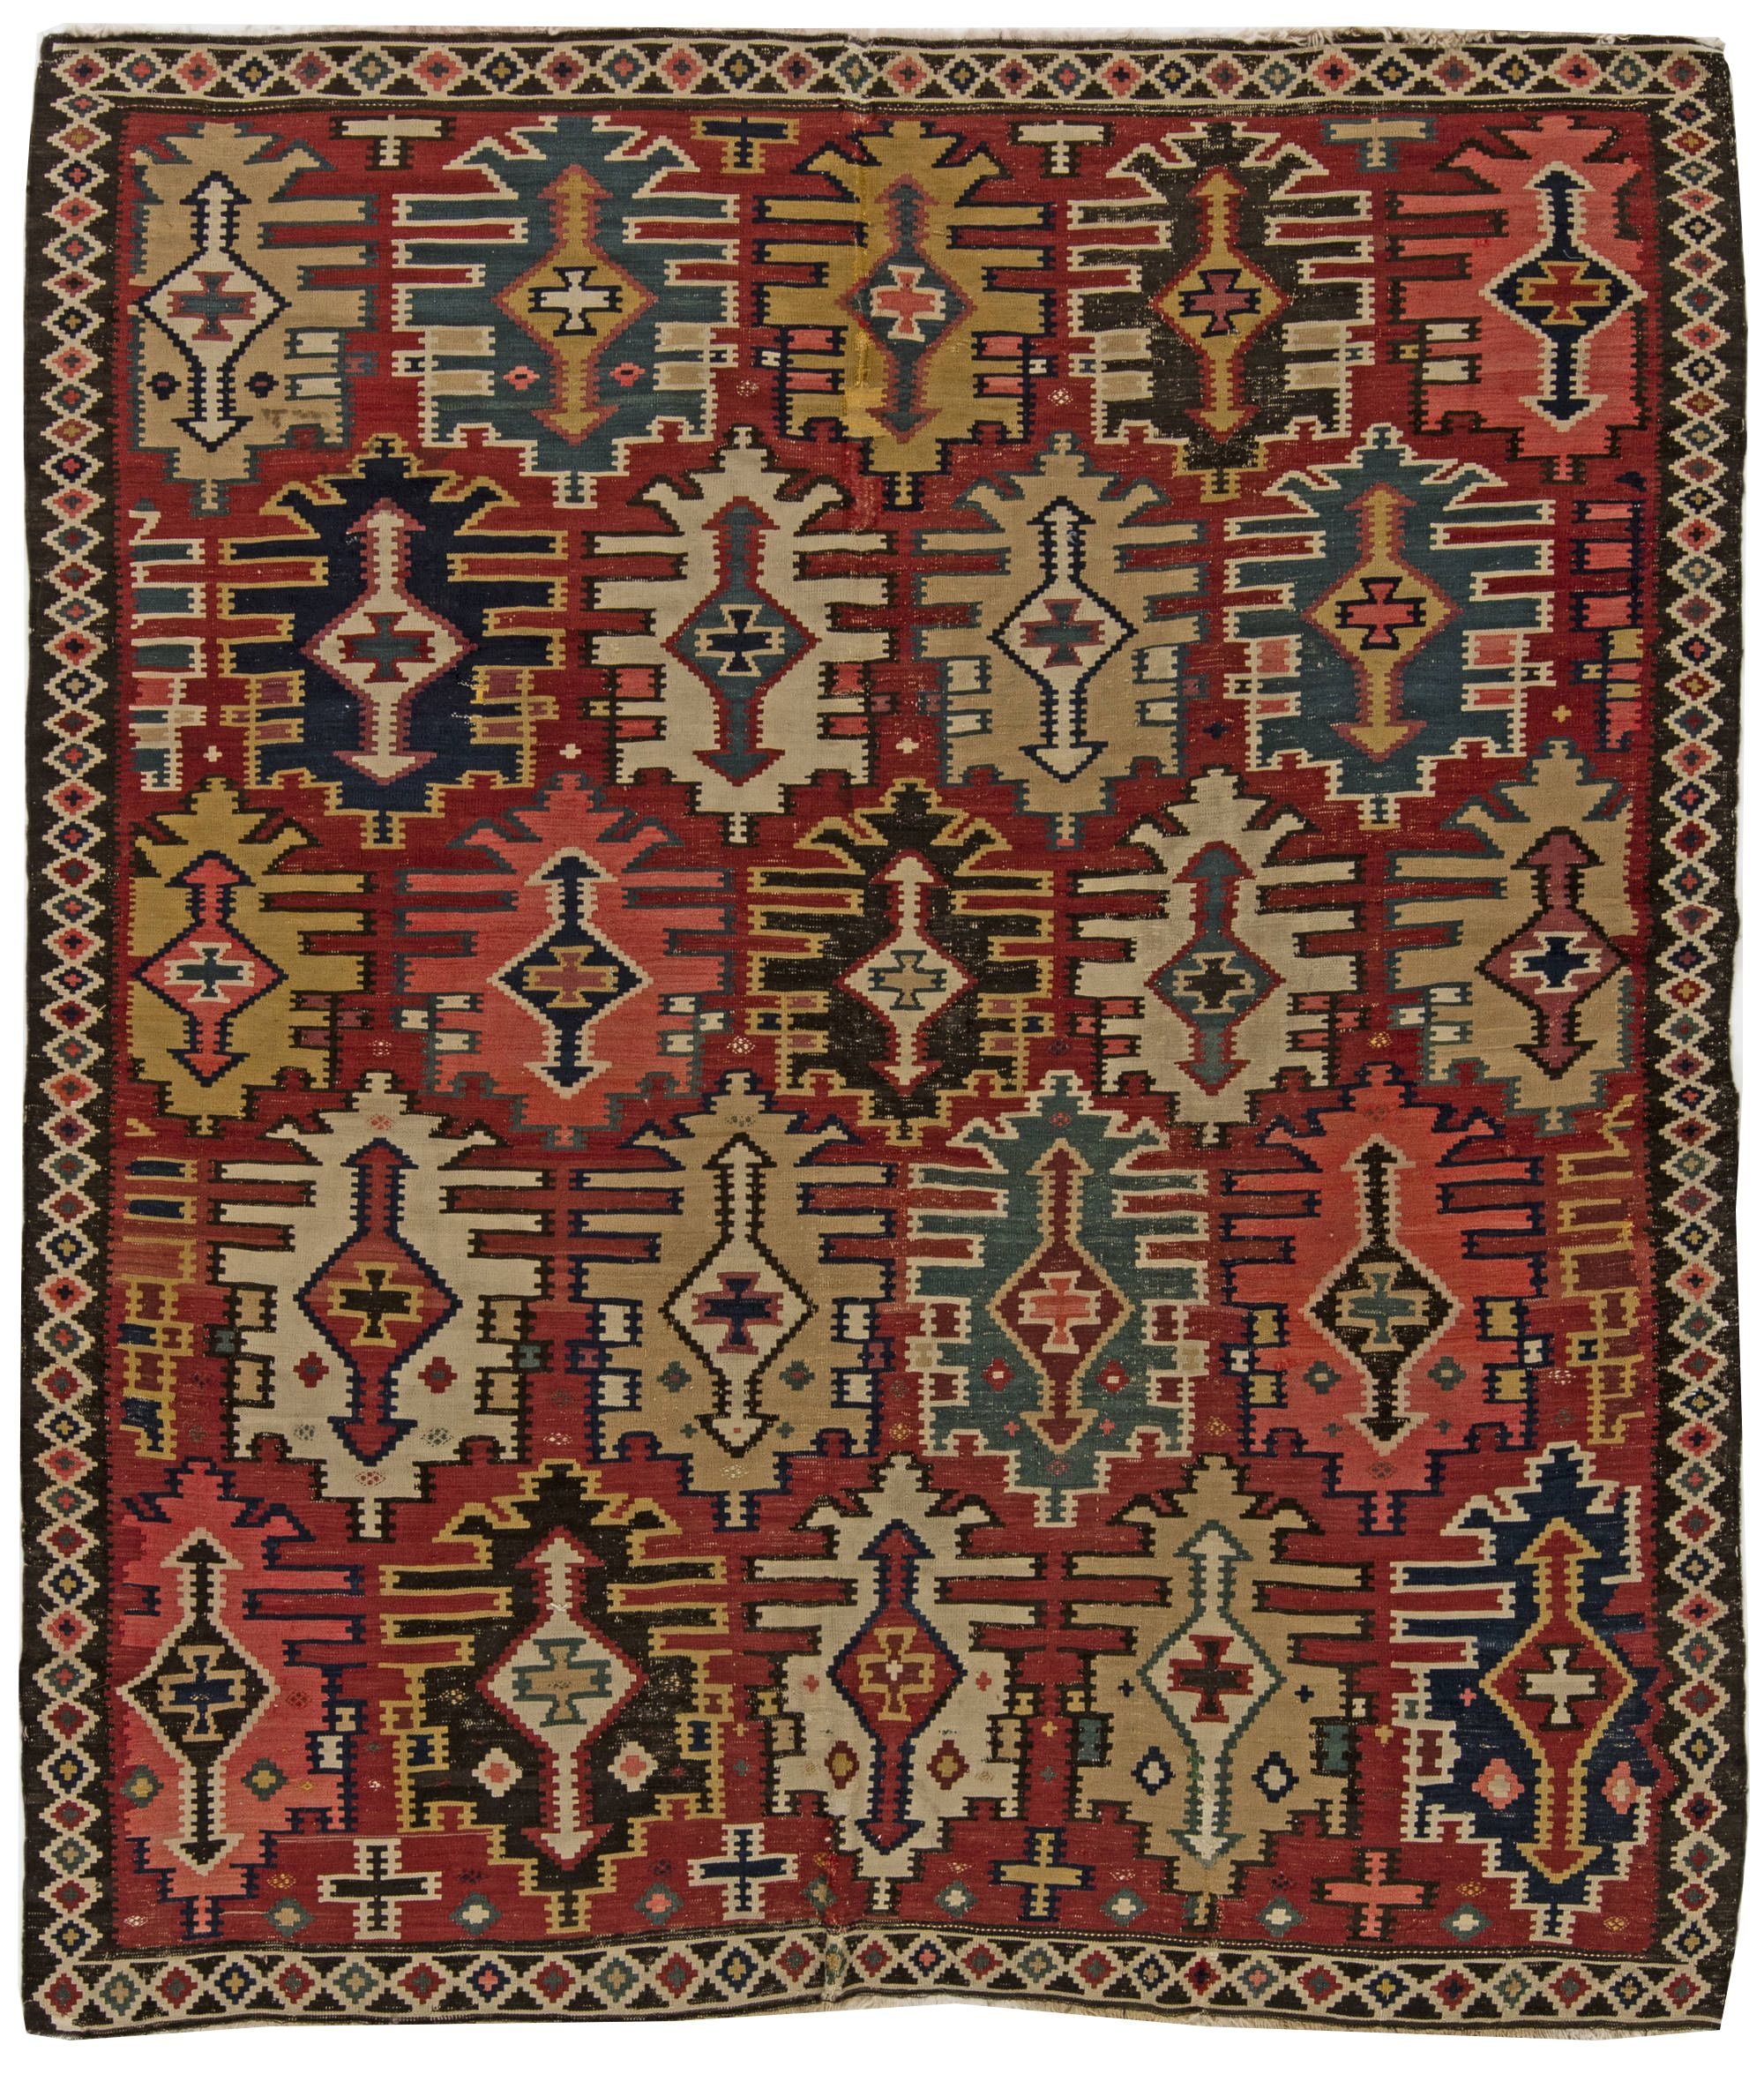 Vintage turkish kilim rug bb6268 by doris leslie blau for Kilim designs